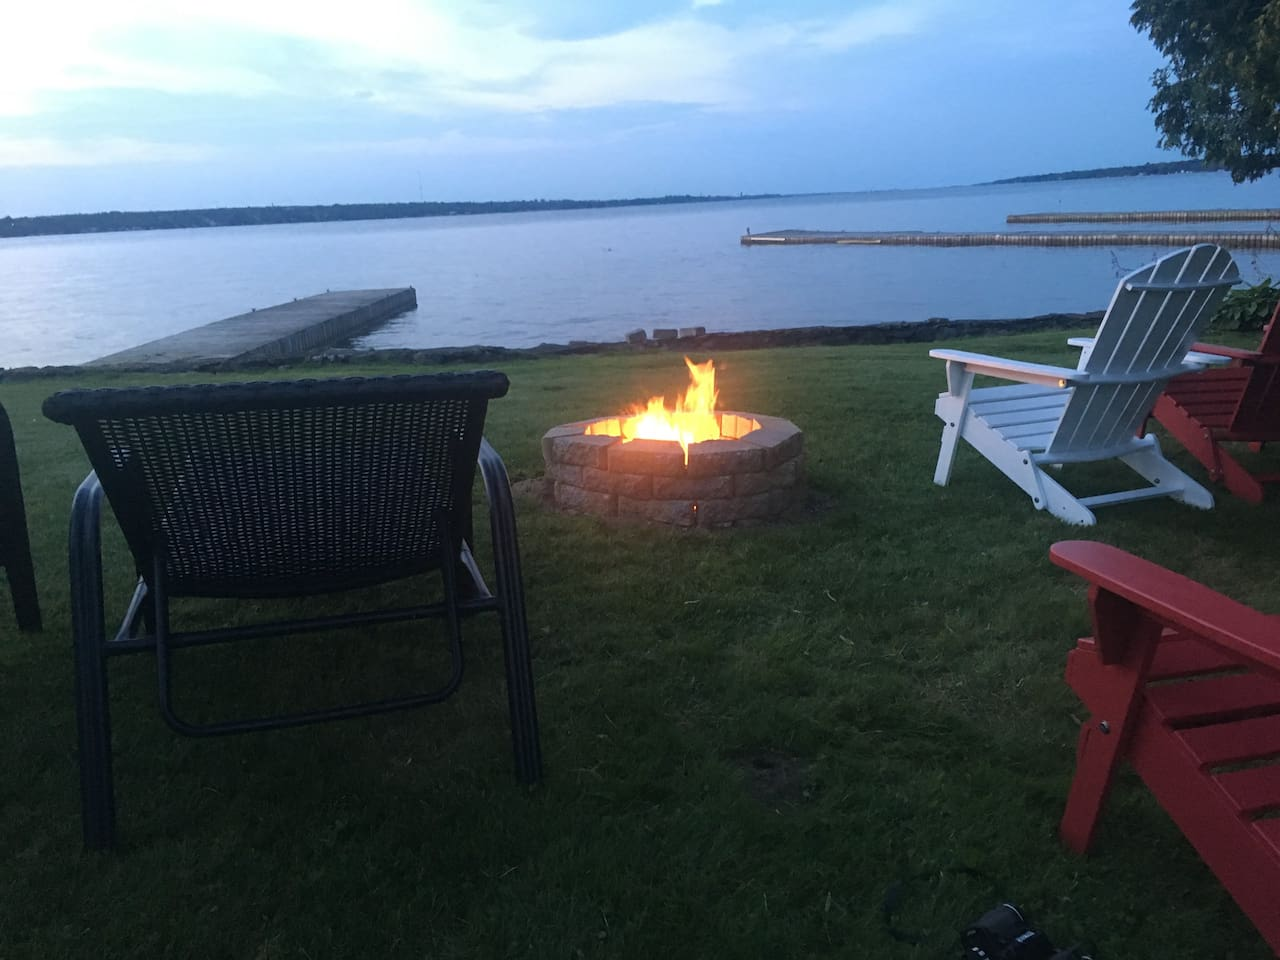 Spend a relaxing week on this St Lawrence River serene river retreat.